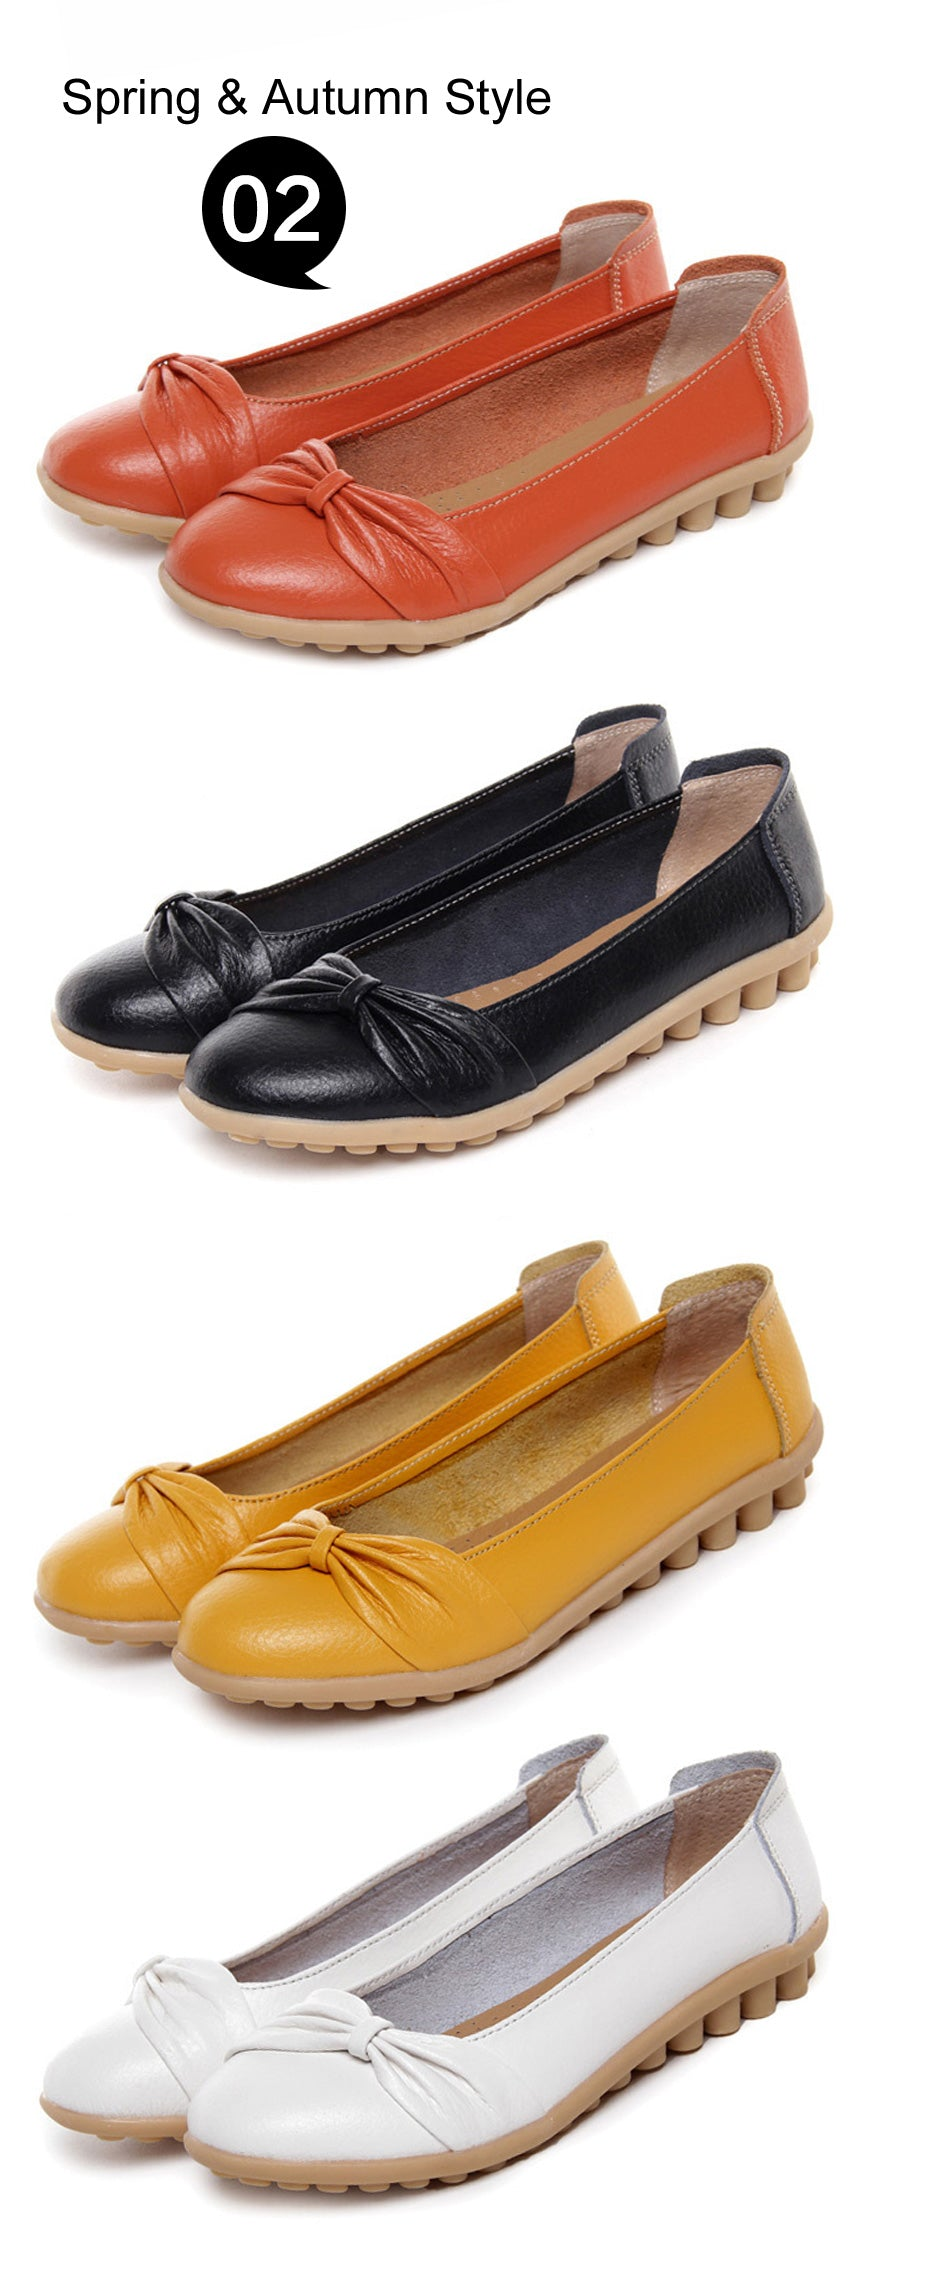 spring and autumn range of bowtie toe shoes